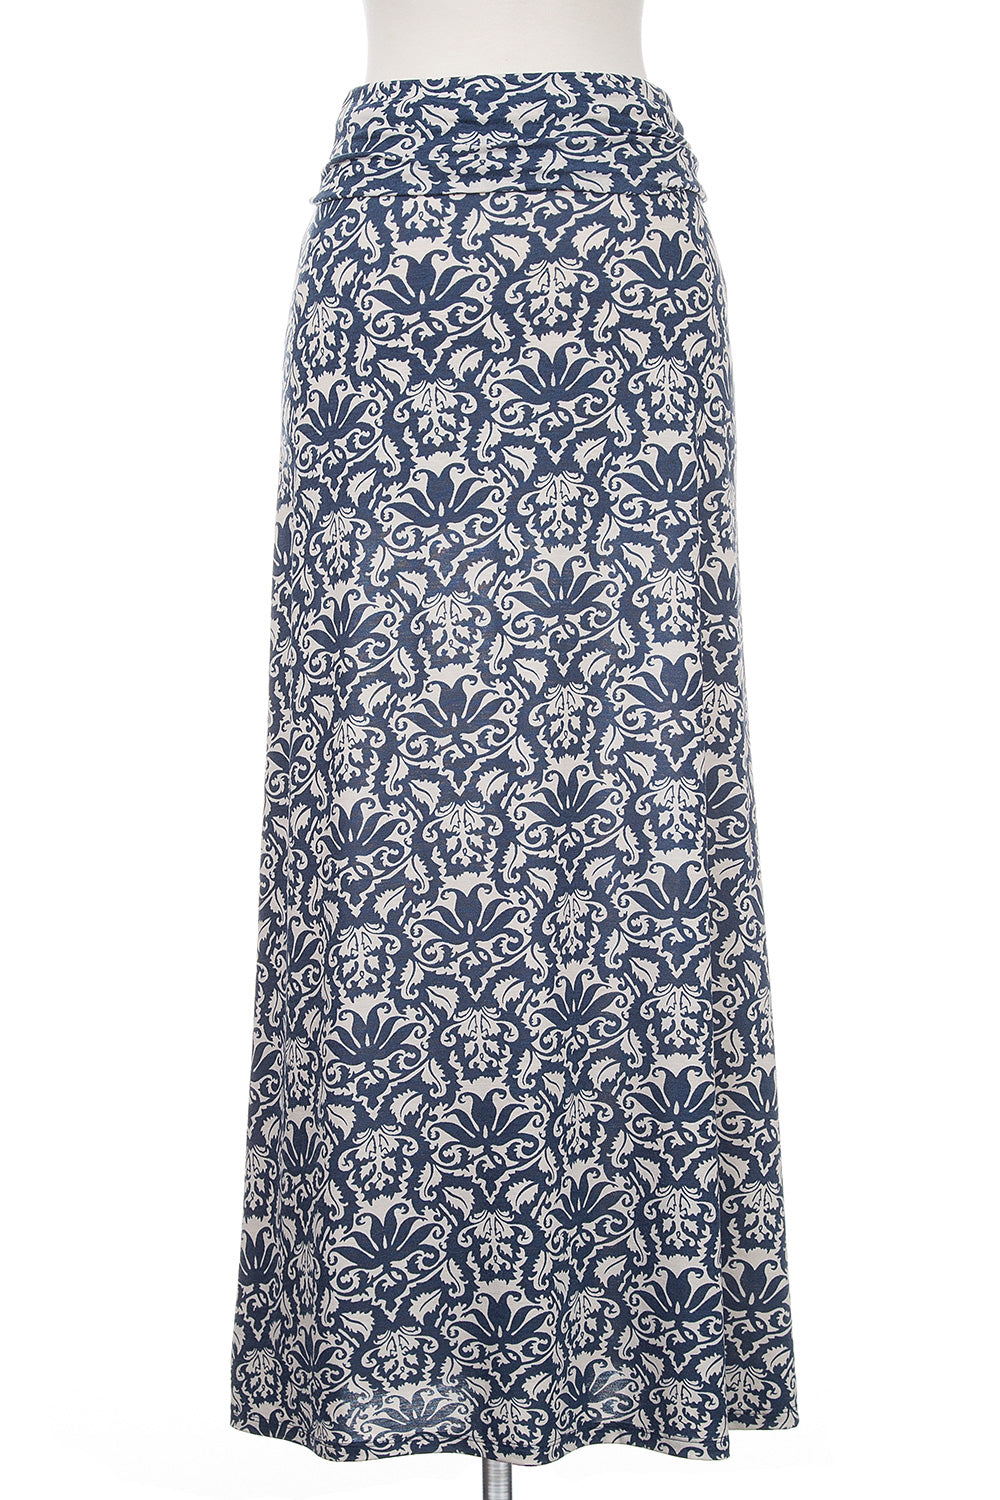 Type 2 Brocade Maxi Skirt